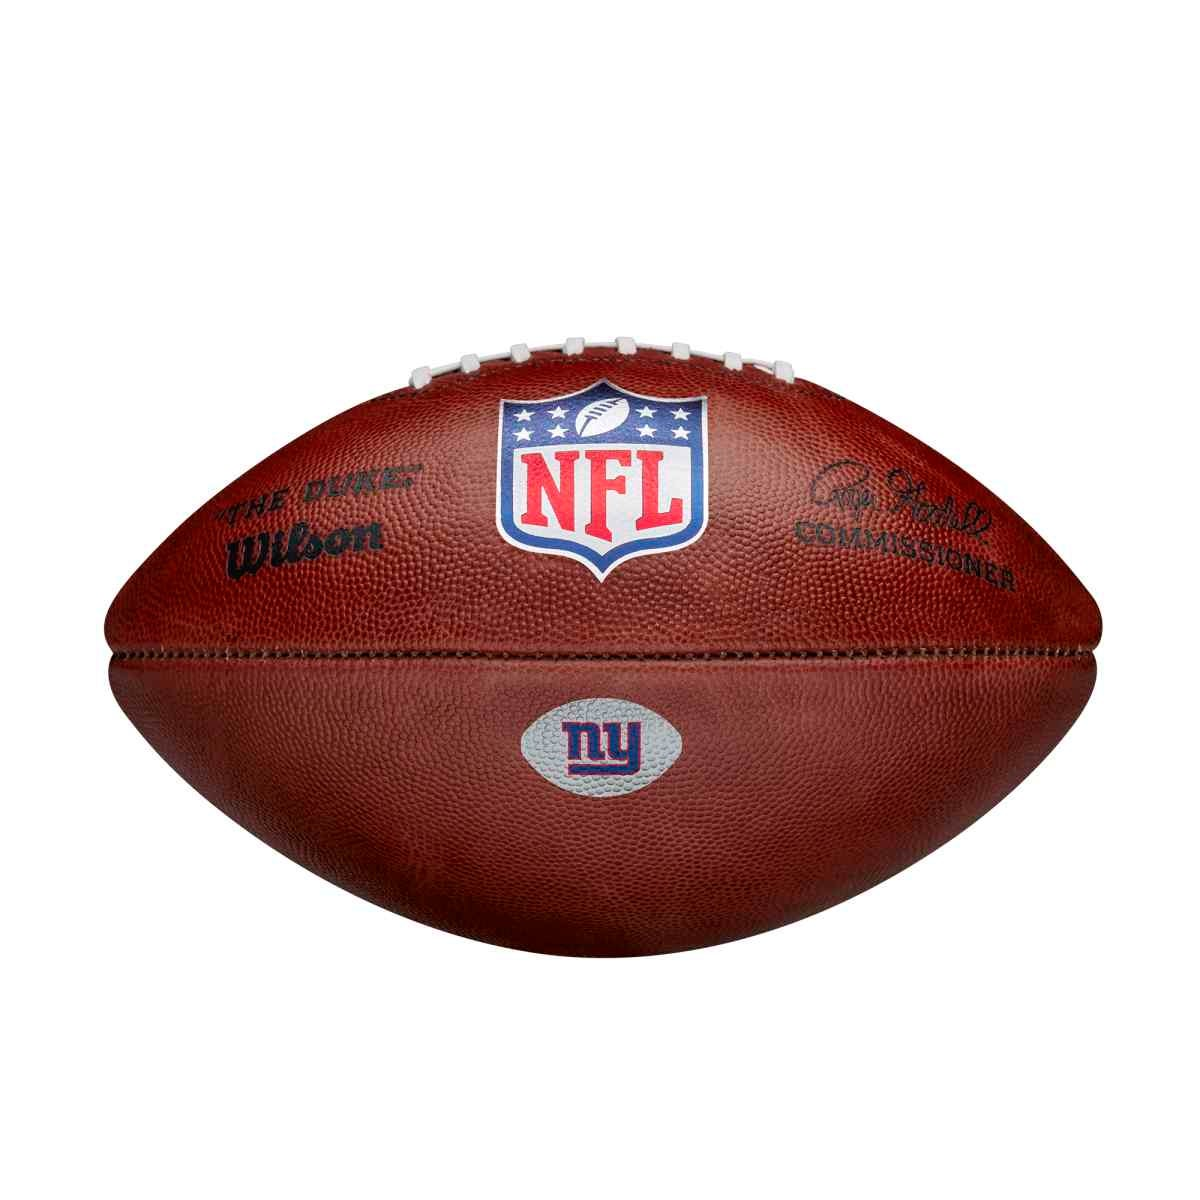 The Duke Decal NFL Football - New York Giants